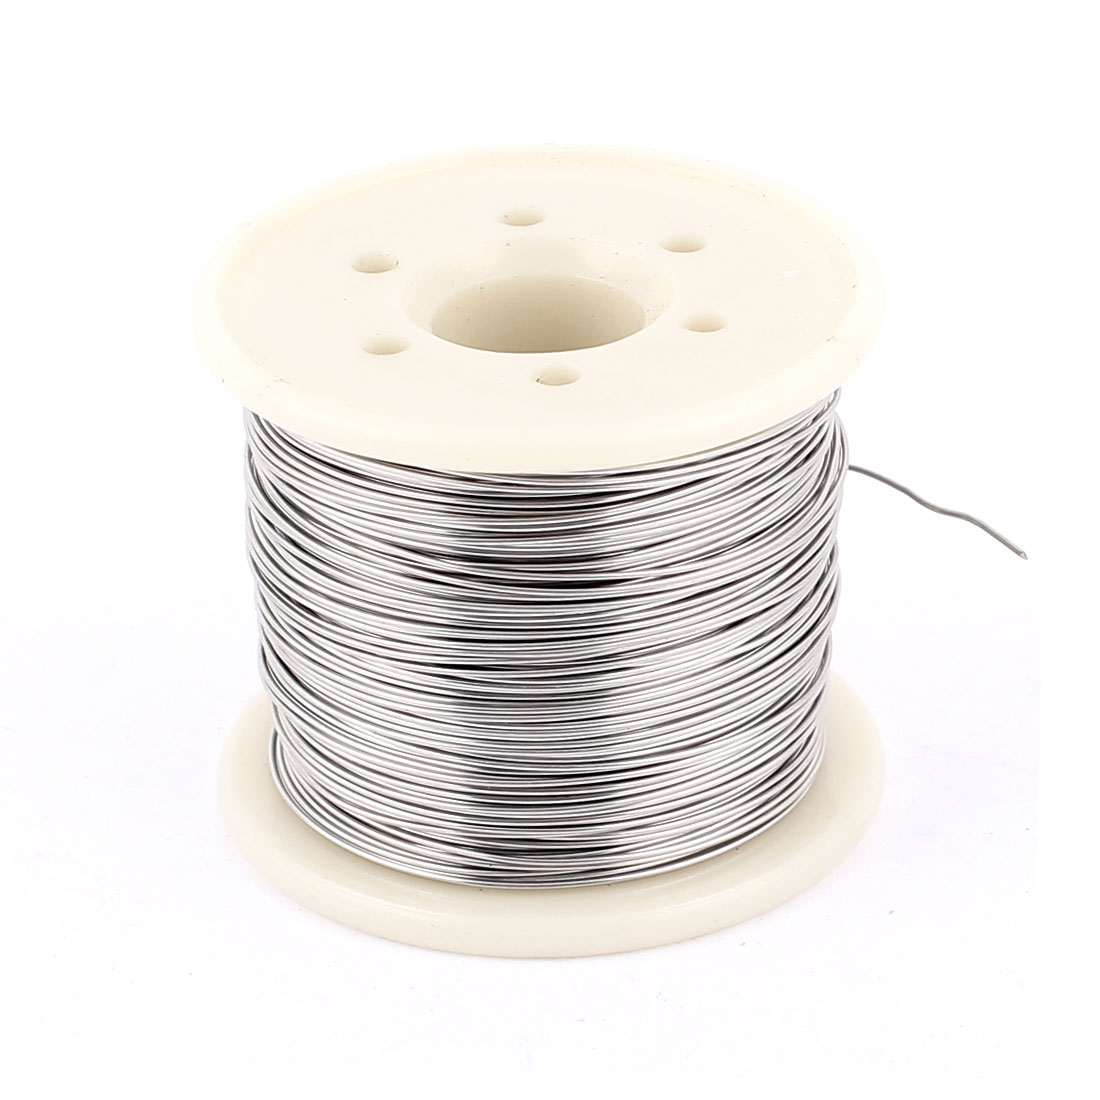 Nichrome 80 Round Wire 0.6mm 22 Gauge AWG 131.23ft Roll 3.997Ohm/m Heater